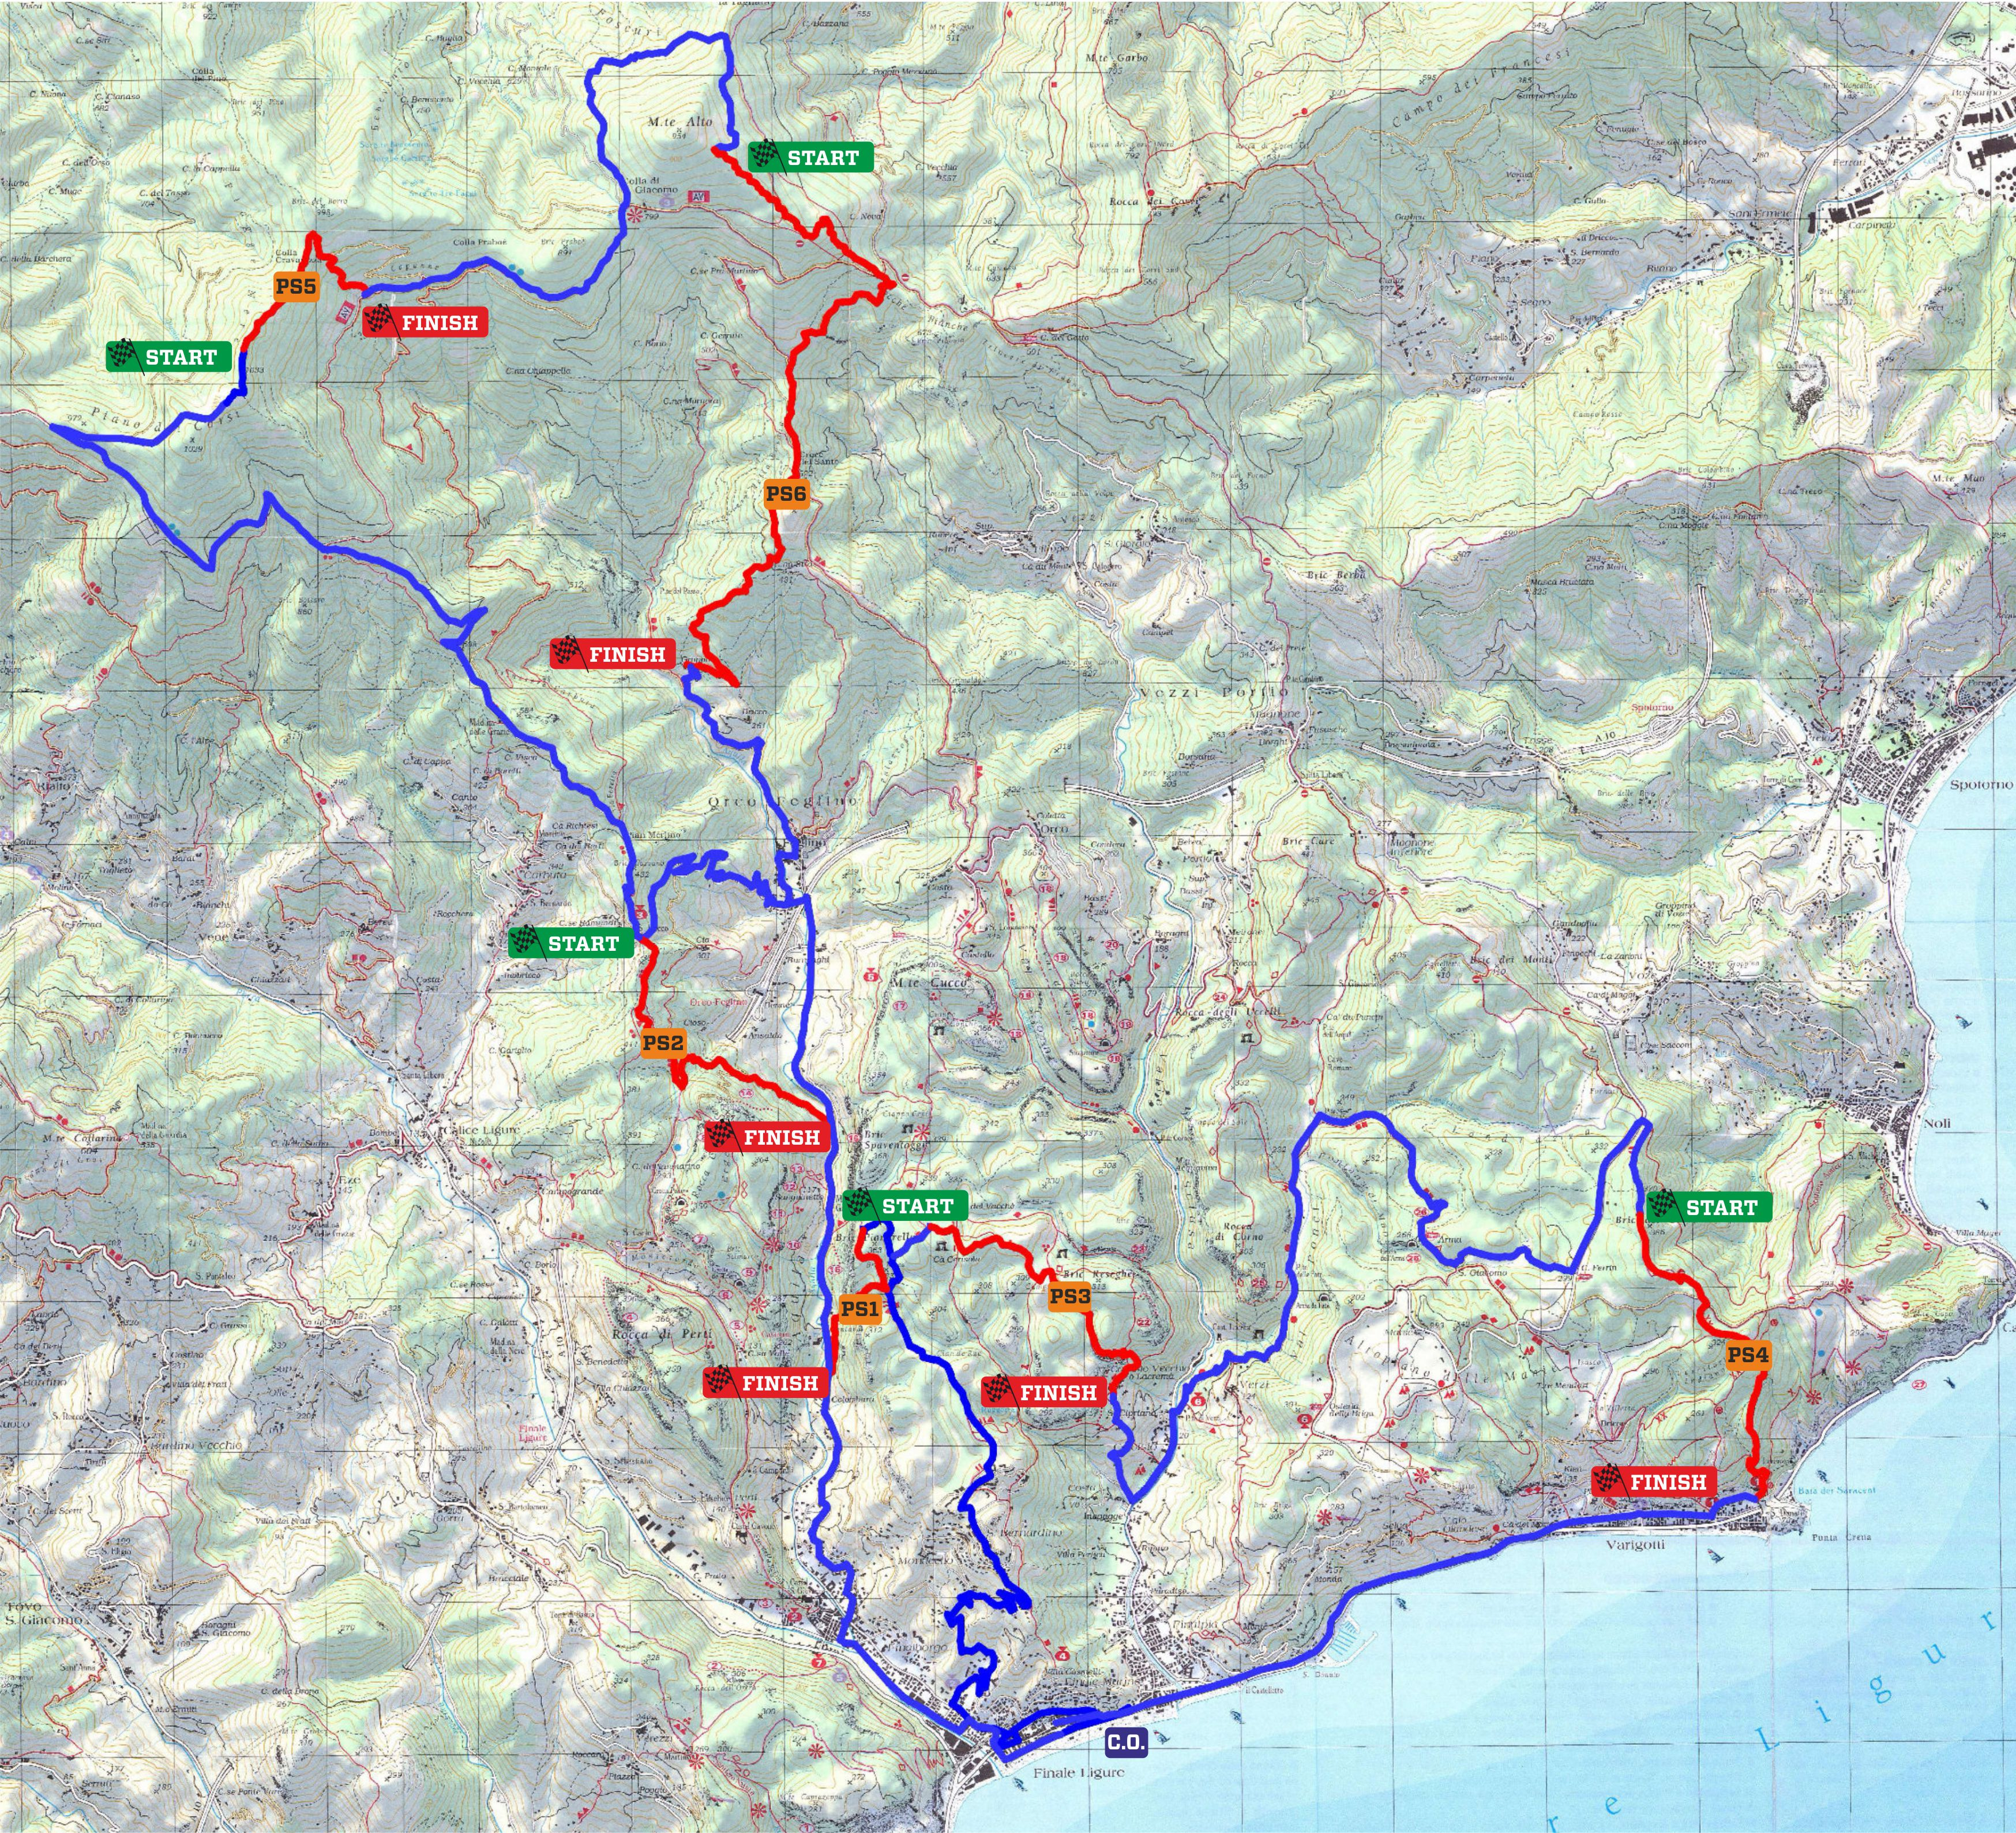 EWS7 The race course of the Grand Final of Finale Ligure has been